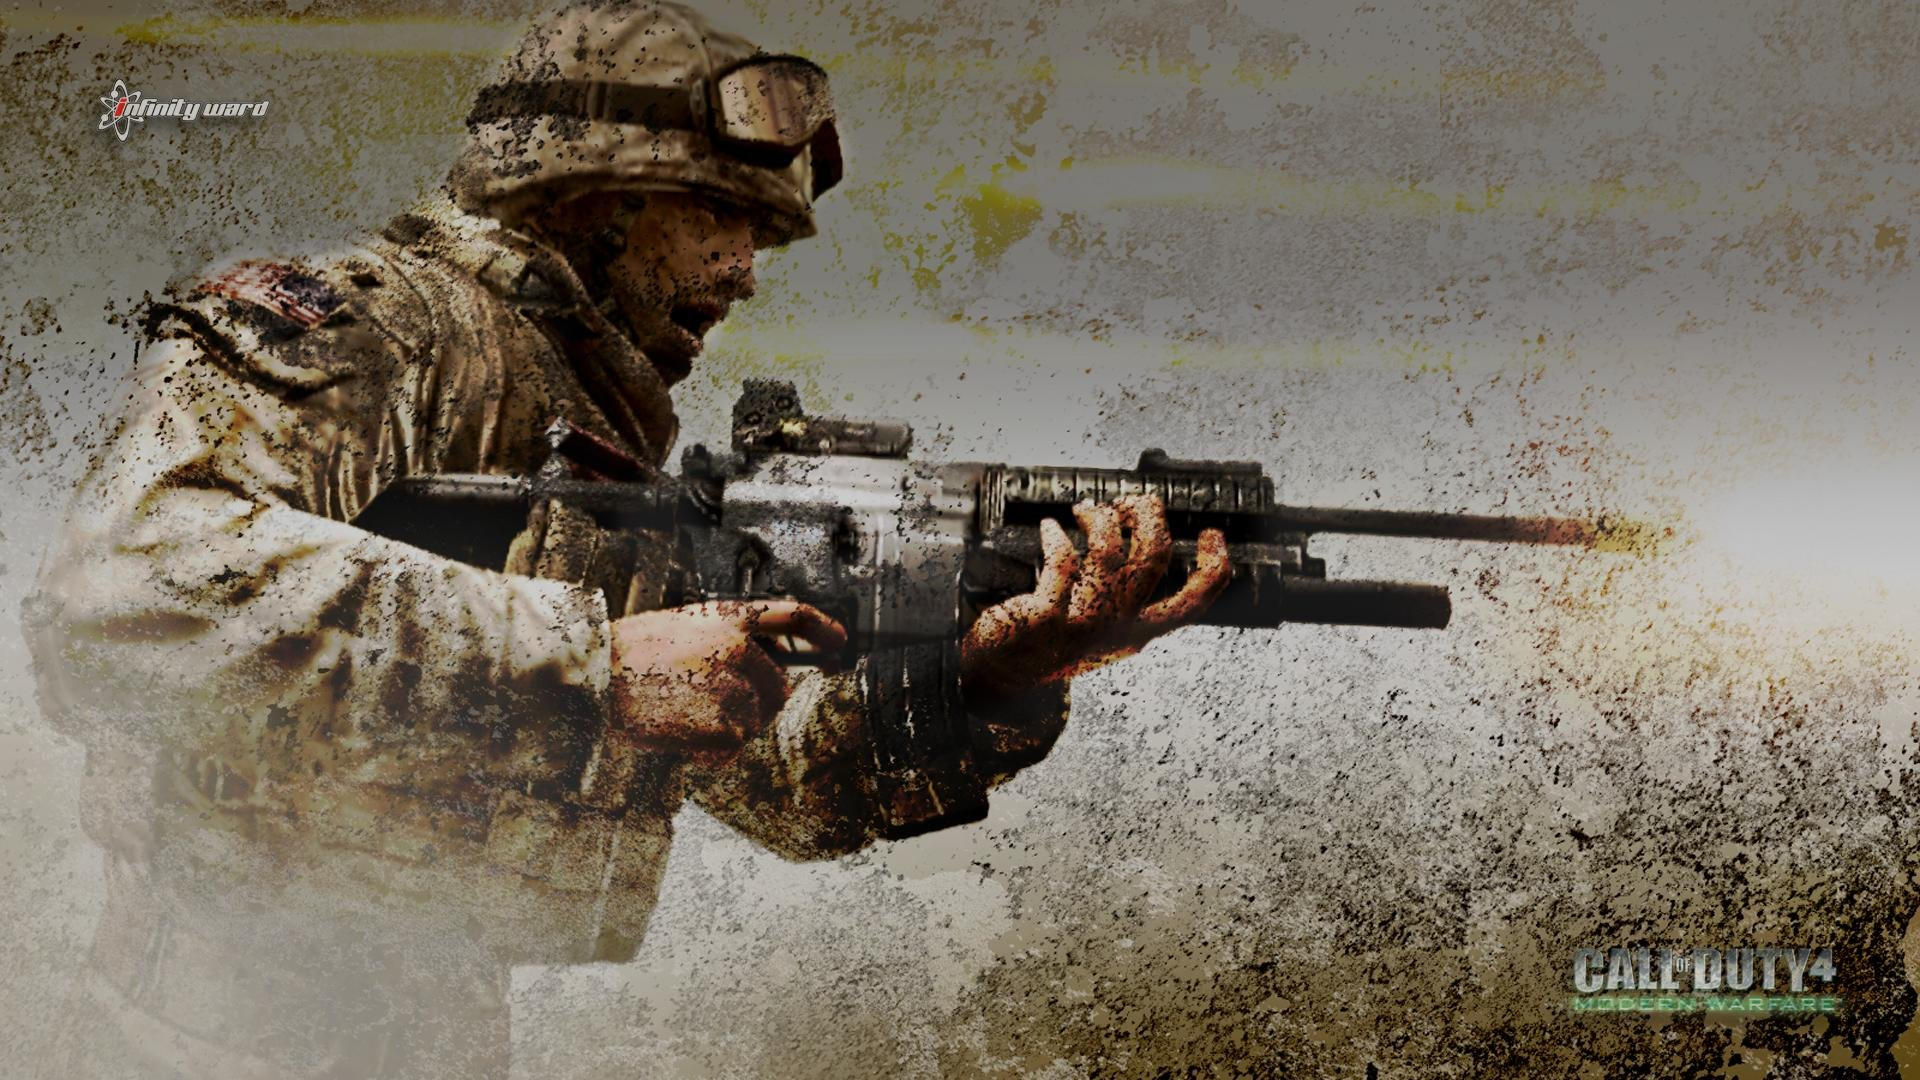 Best Call Of Duty 4 Modern Warfare Wallpaper Id 20568 For High